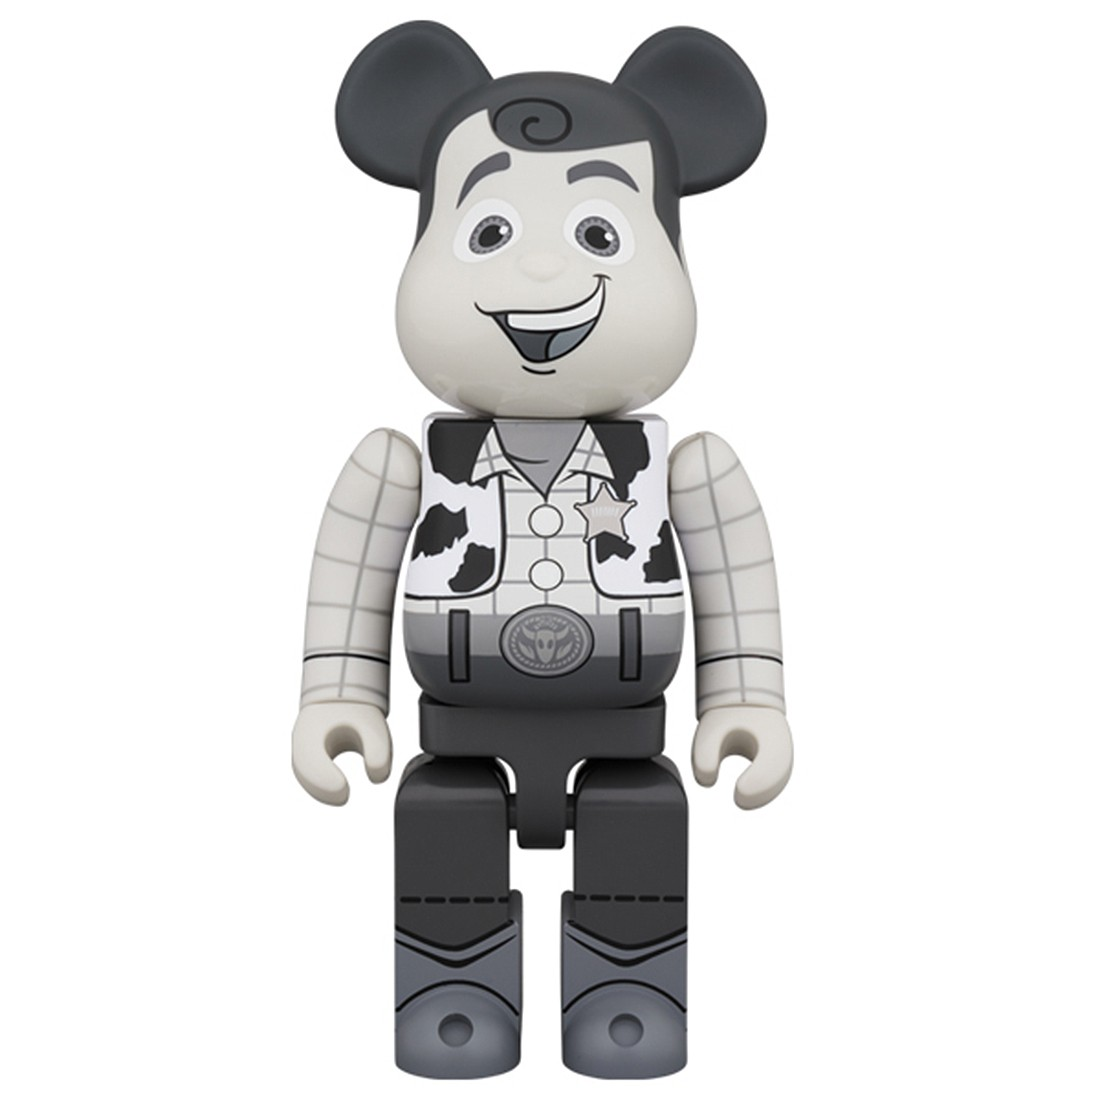 PREORDER - Medicom Toy Story Woody Black And White 400% Bearbrick Figure (gray)